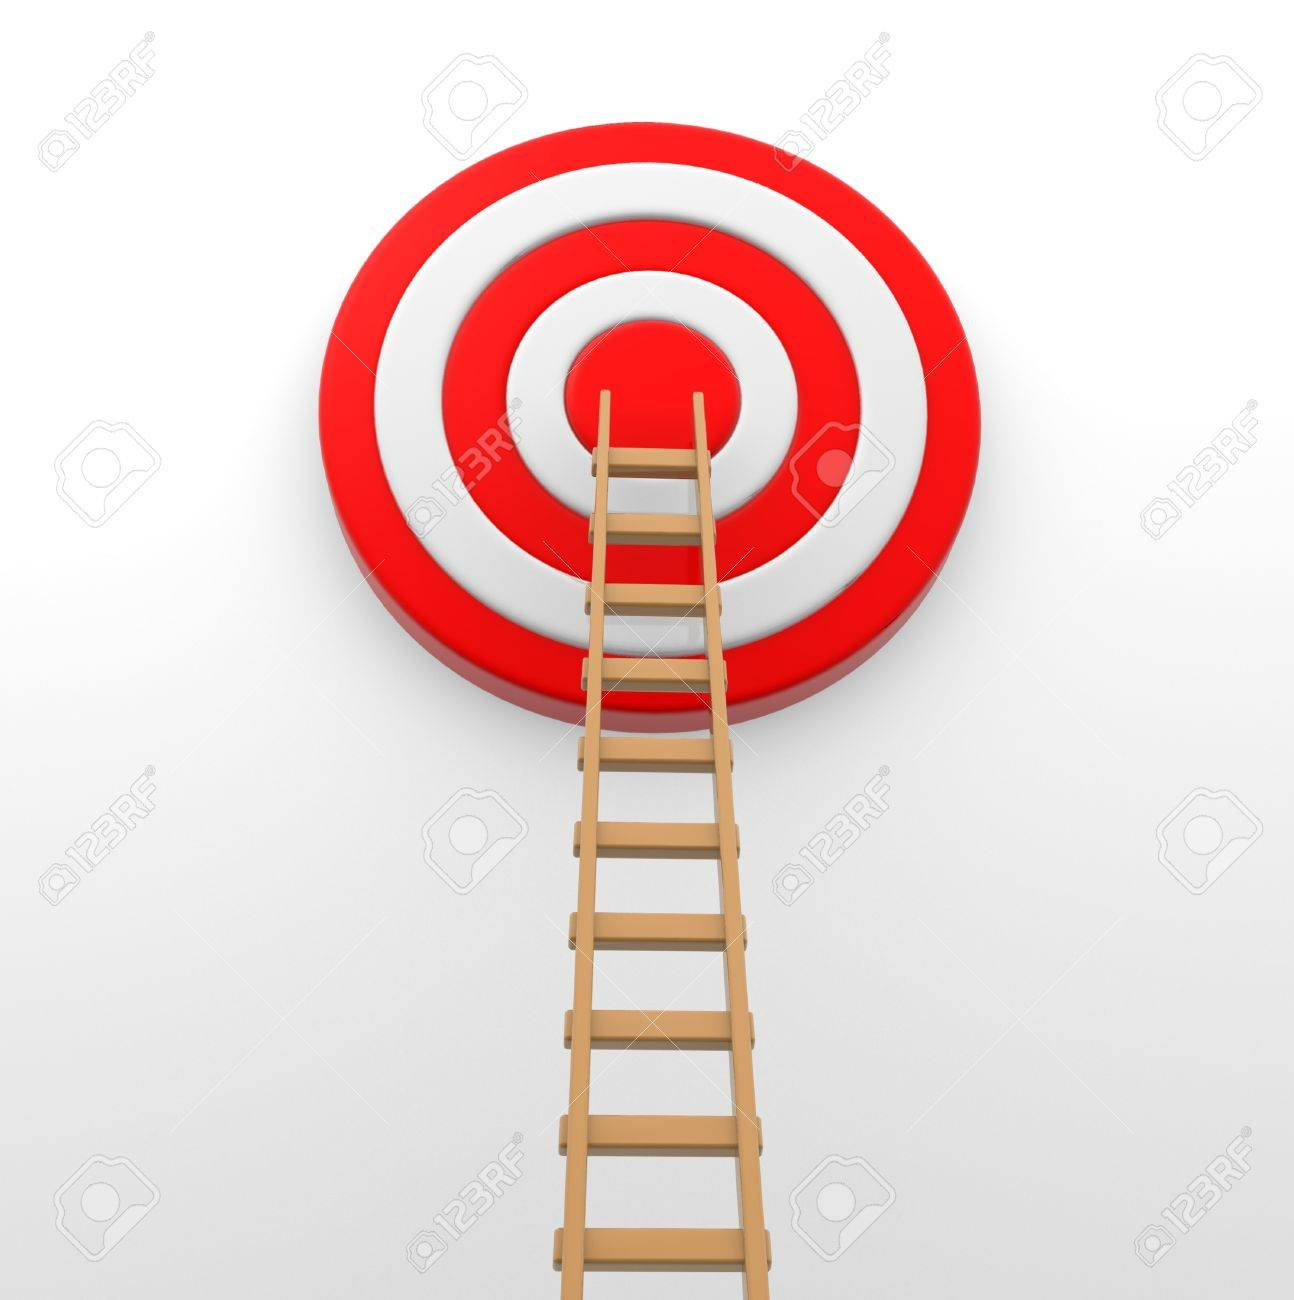 Ladder to the middle of the red target. 3d render Stock Photo - 15117894